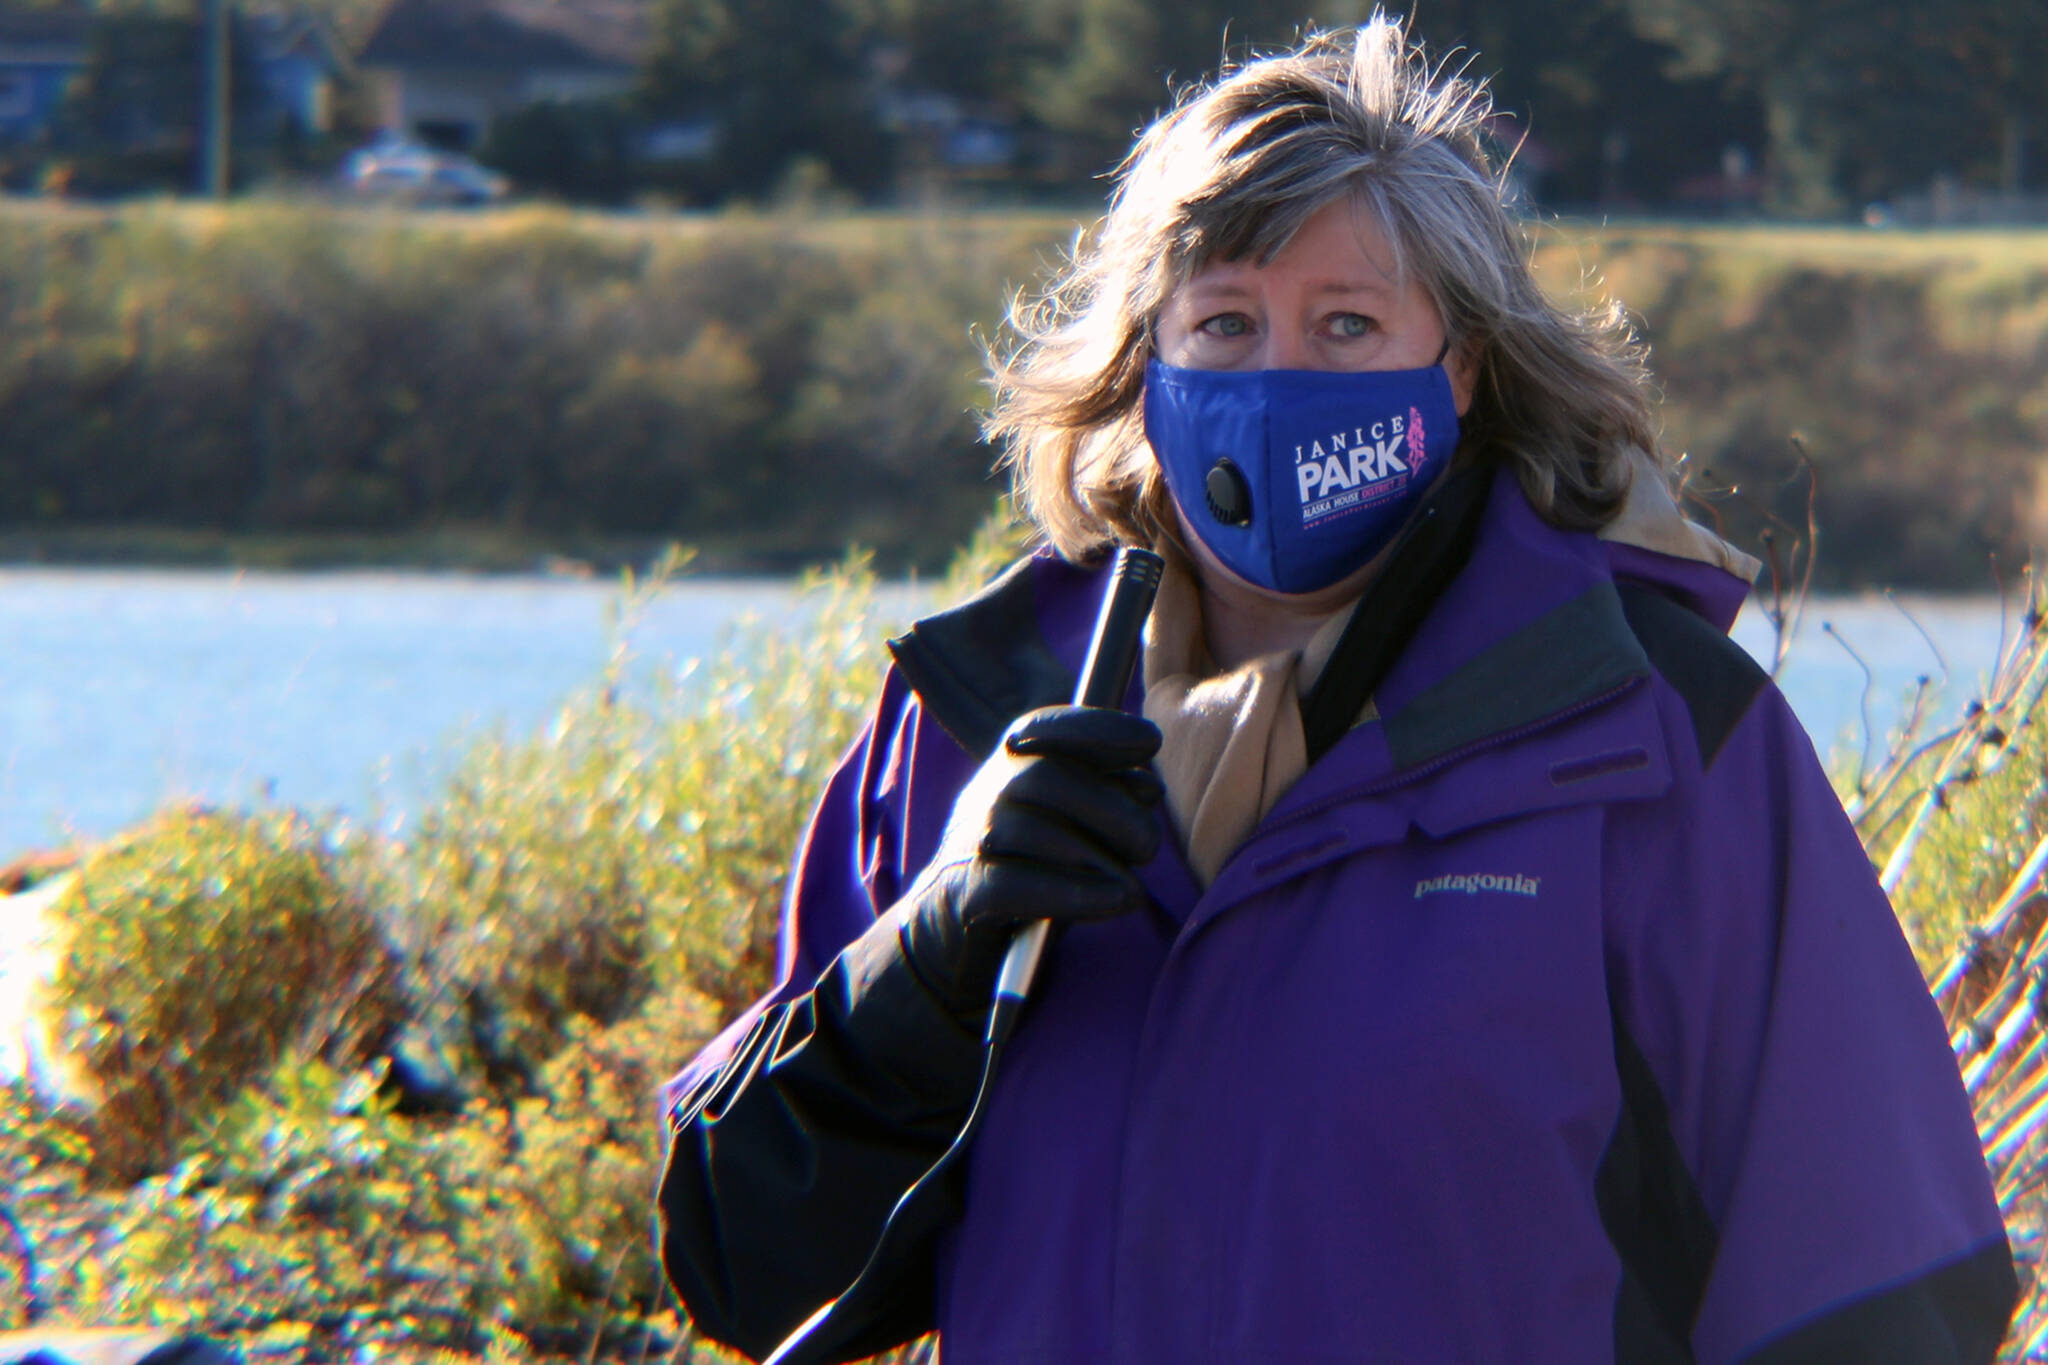 State Rep. Sara Hannan, D-Juneau, participate's in an October 2020 march and rally. Hannan on Monday apologized for comments made during a state House of Representatives floor session in which she suggested Nazi medical experiments led to gained knowledge. ((Ben Hohenstatt / Juneau Empire File)